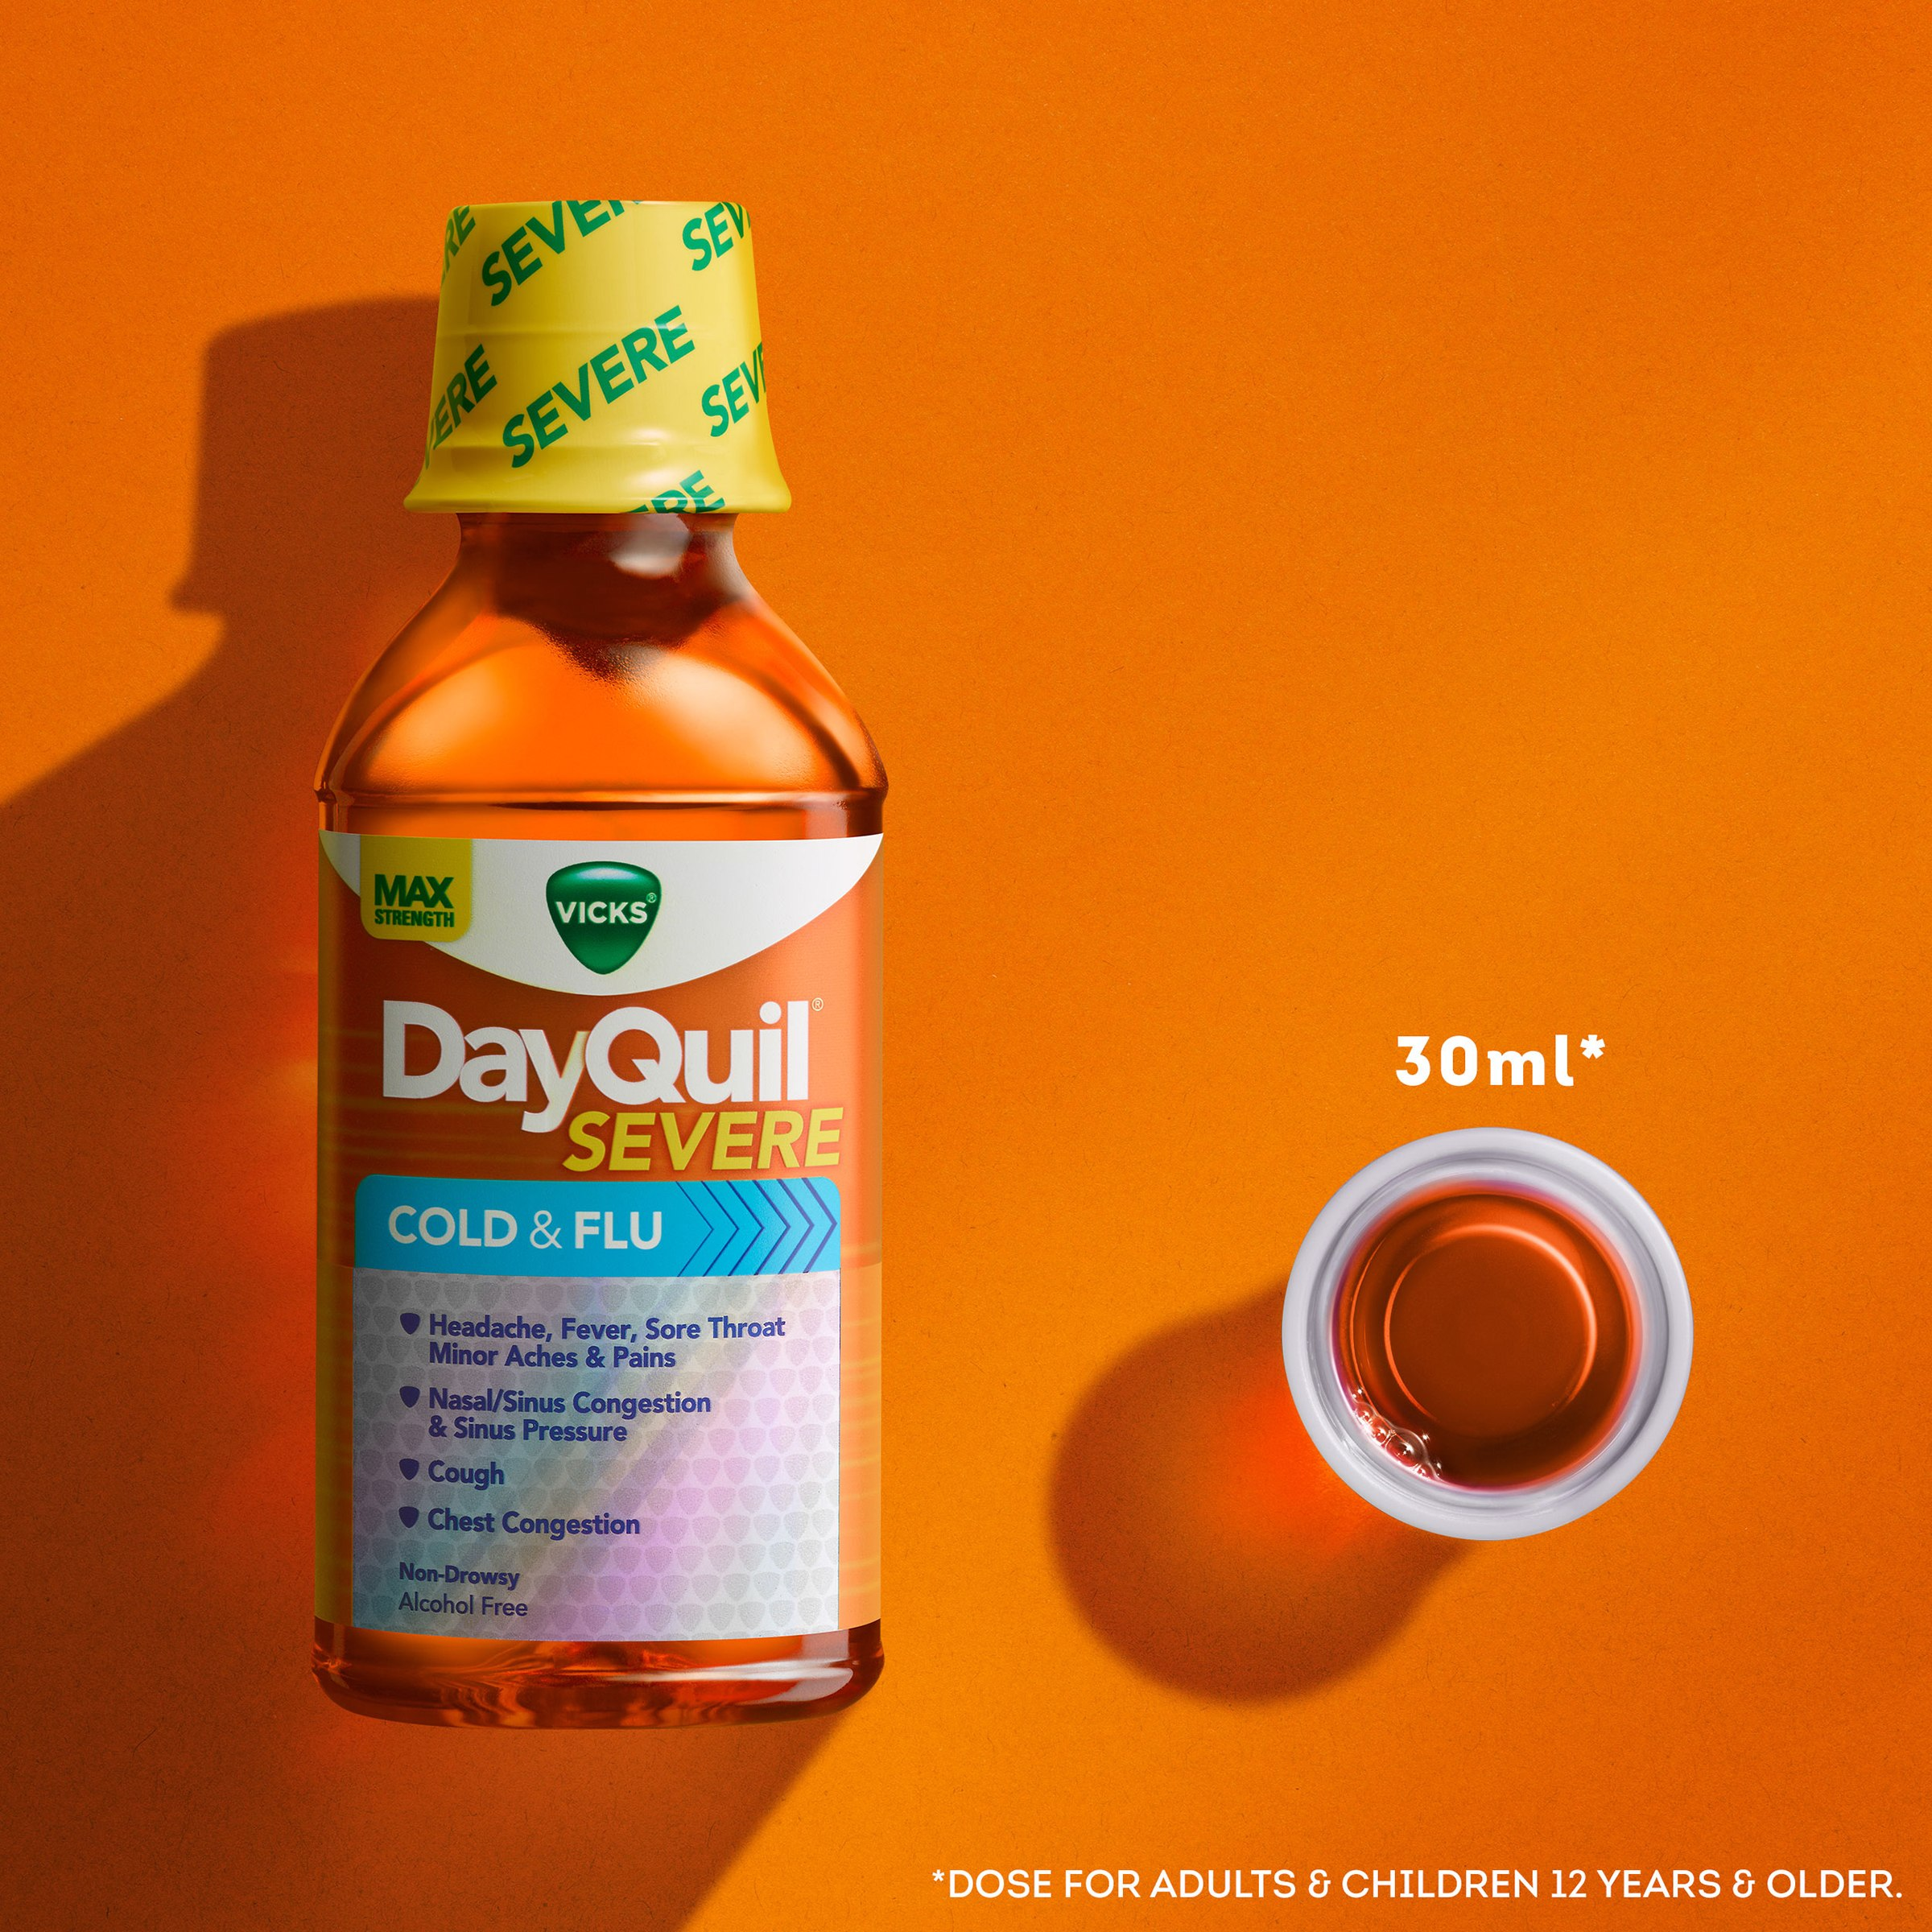 Vicks DayQuil Severe Cold & Flu And NyQuil Severe Cold